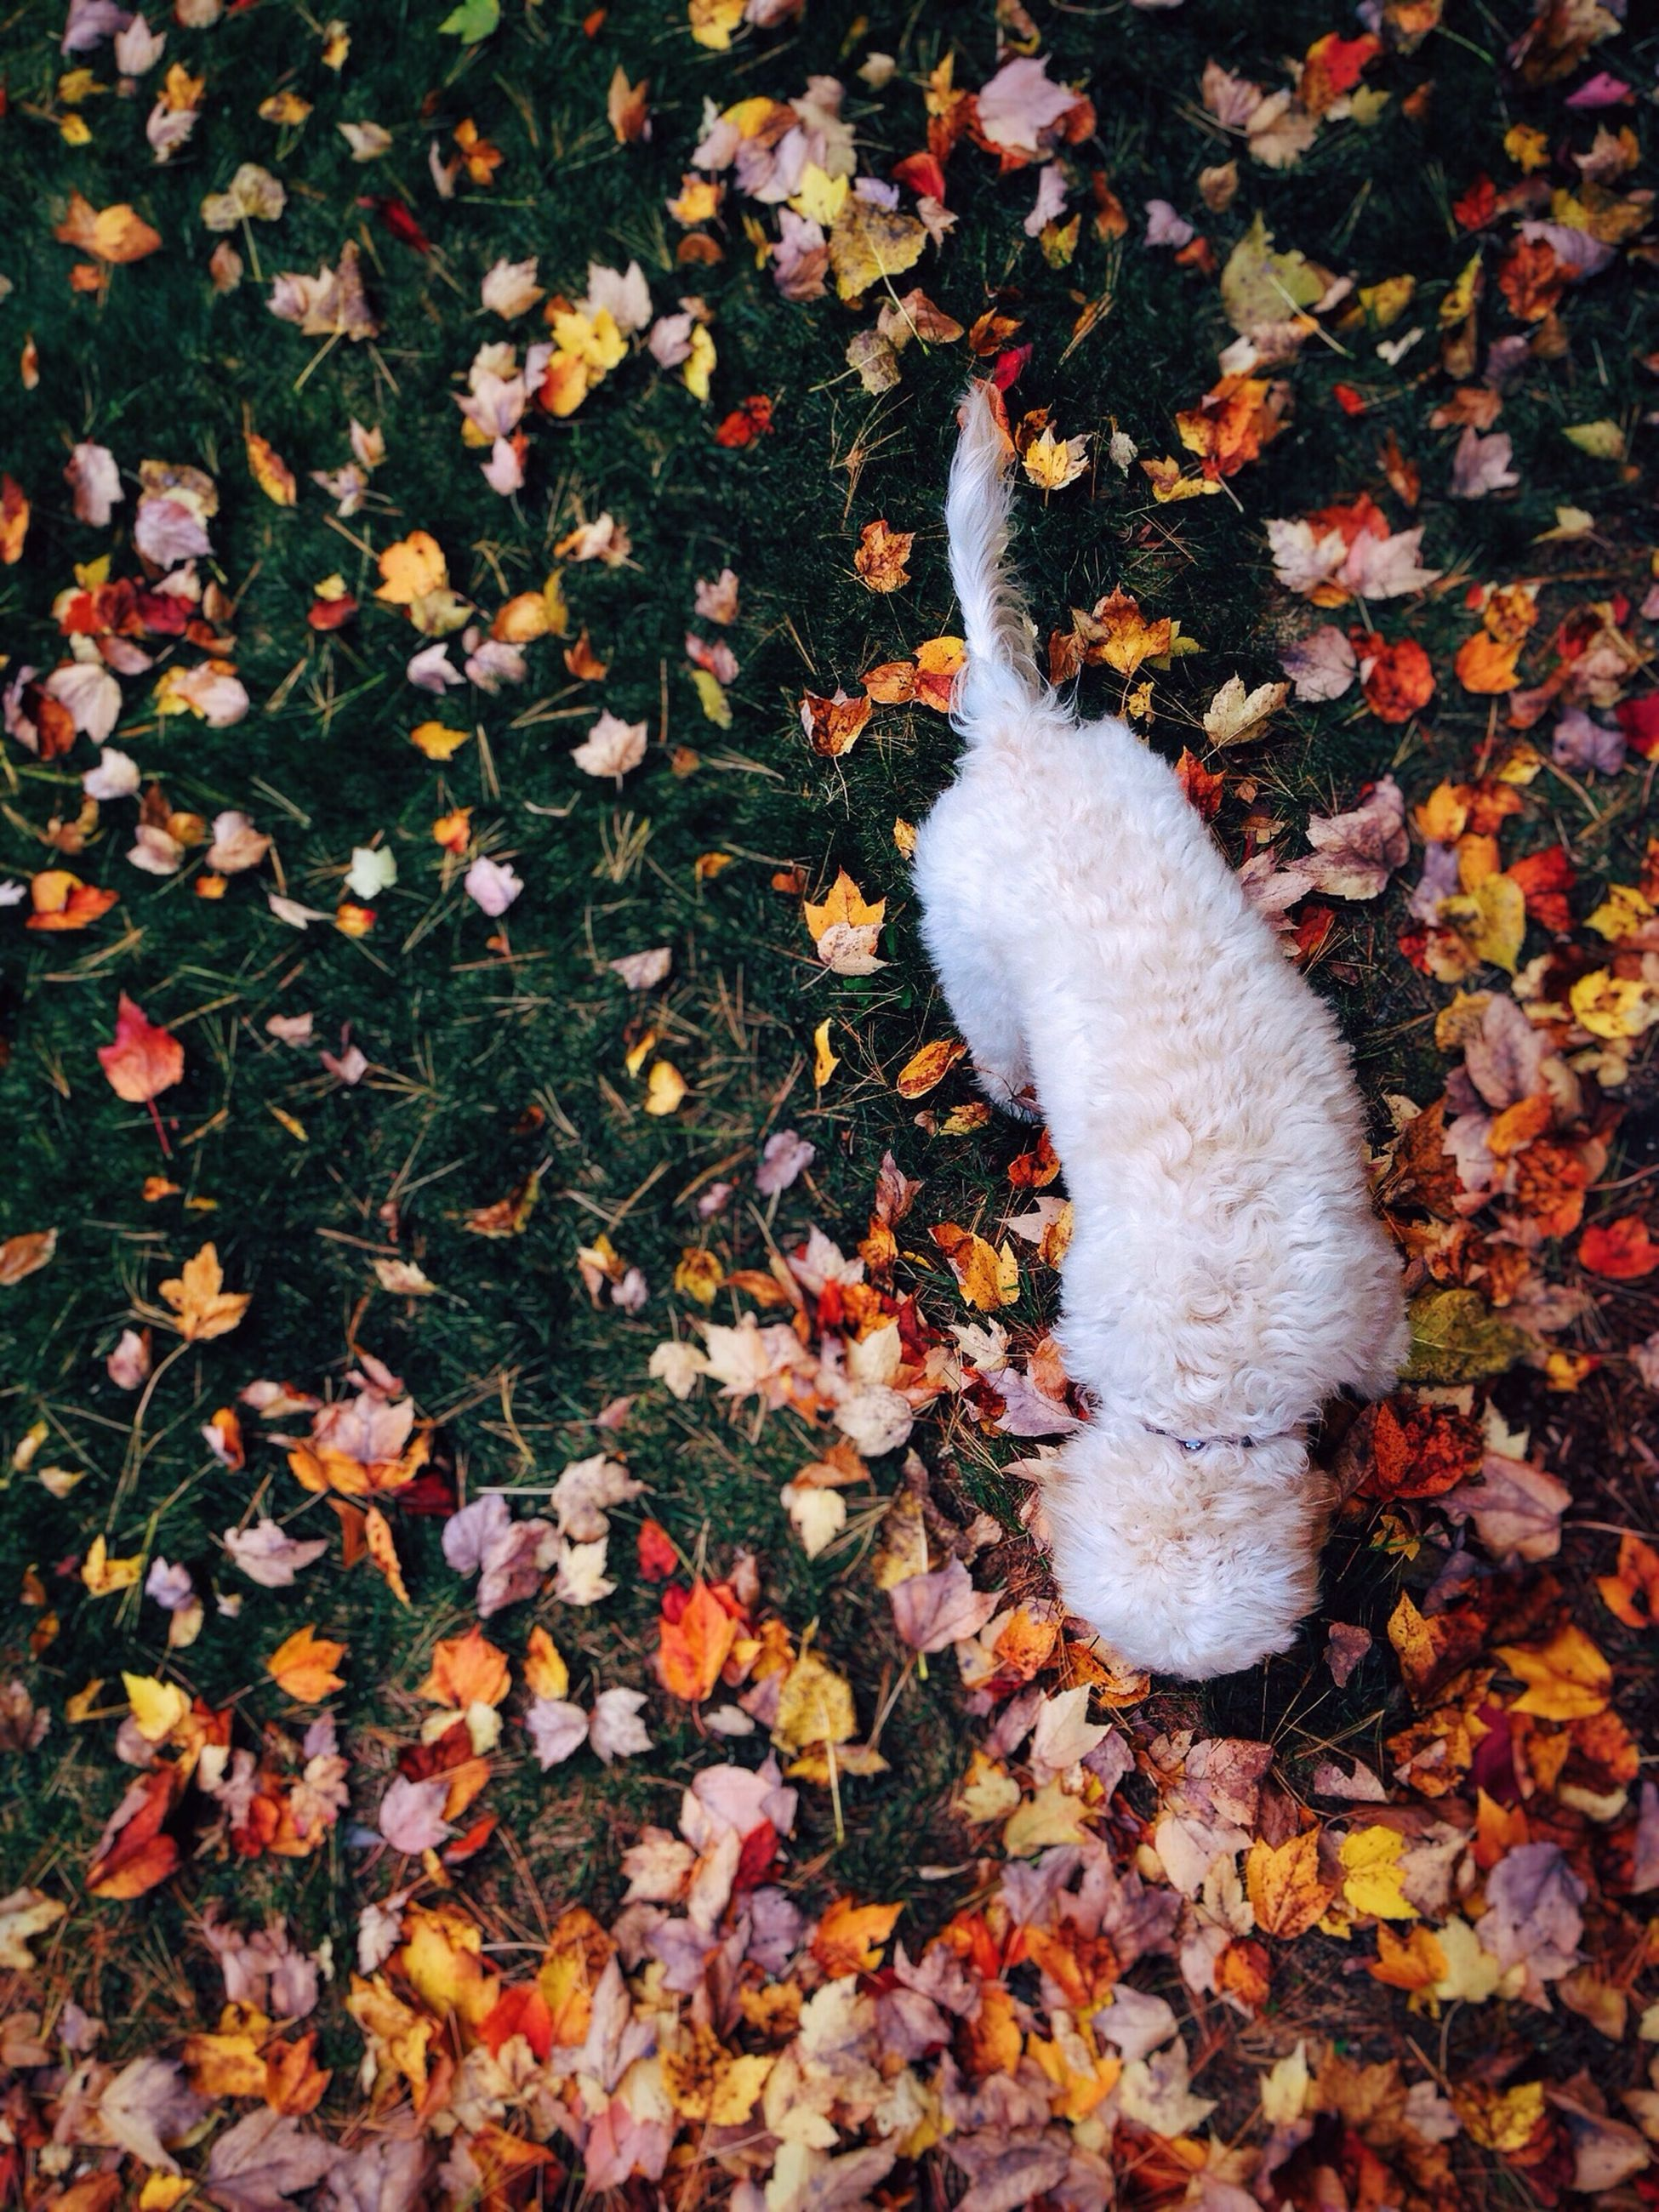 leaf, autumn, change, high angle view, season, leaves, field, nature, fallen, animal themes, dry, falling, day, outdoors, grass, ground, no people, one animal, white color, park - man made space